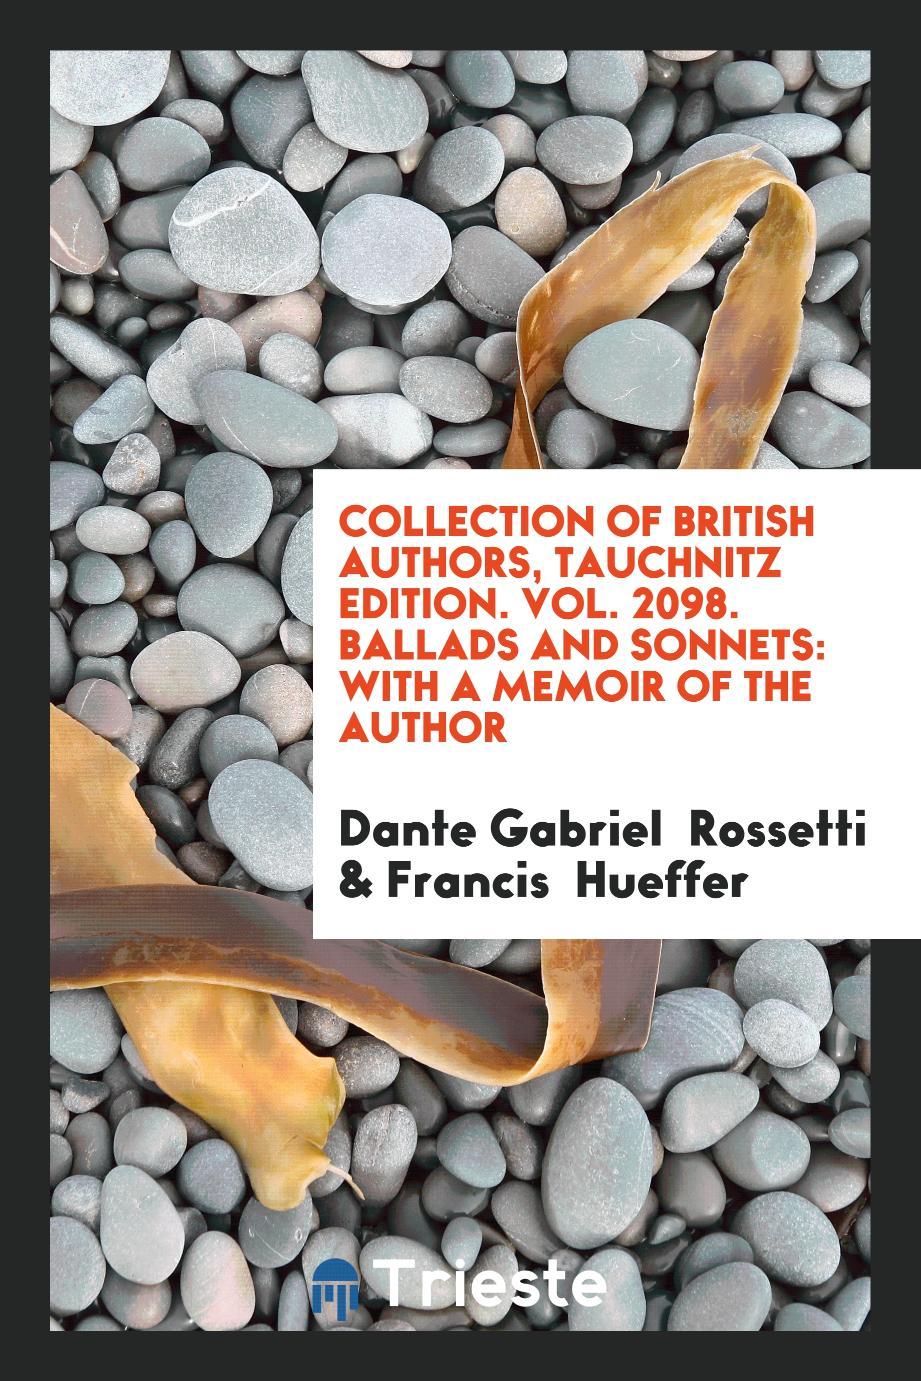 Collection of British Authors, Tauchnitz Edition. Vol. 2098. Ballads and Sonnets: With a Memoir of the Author